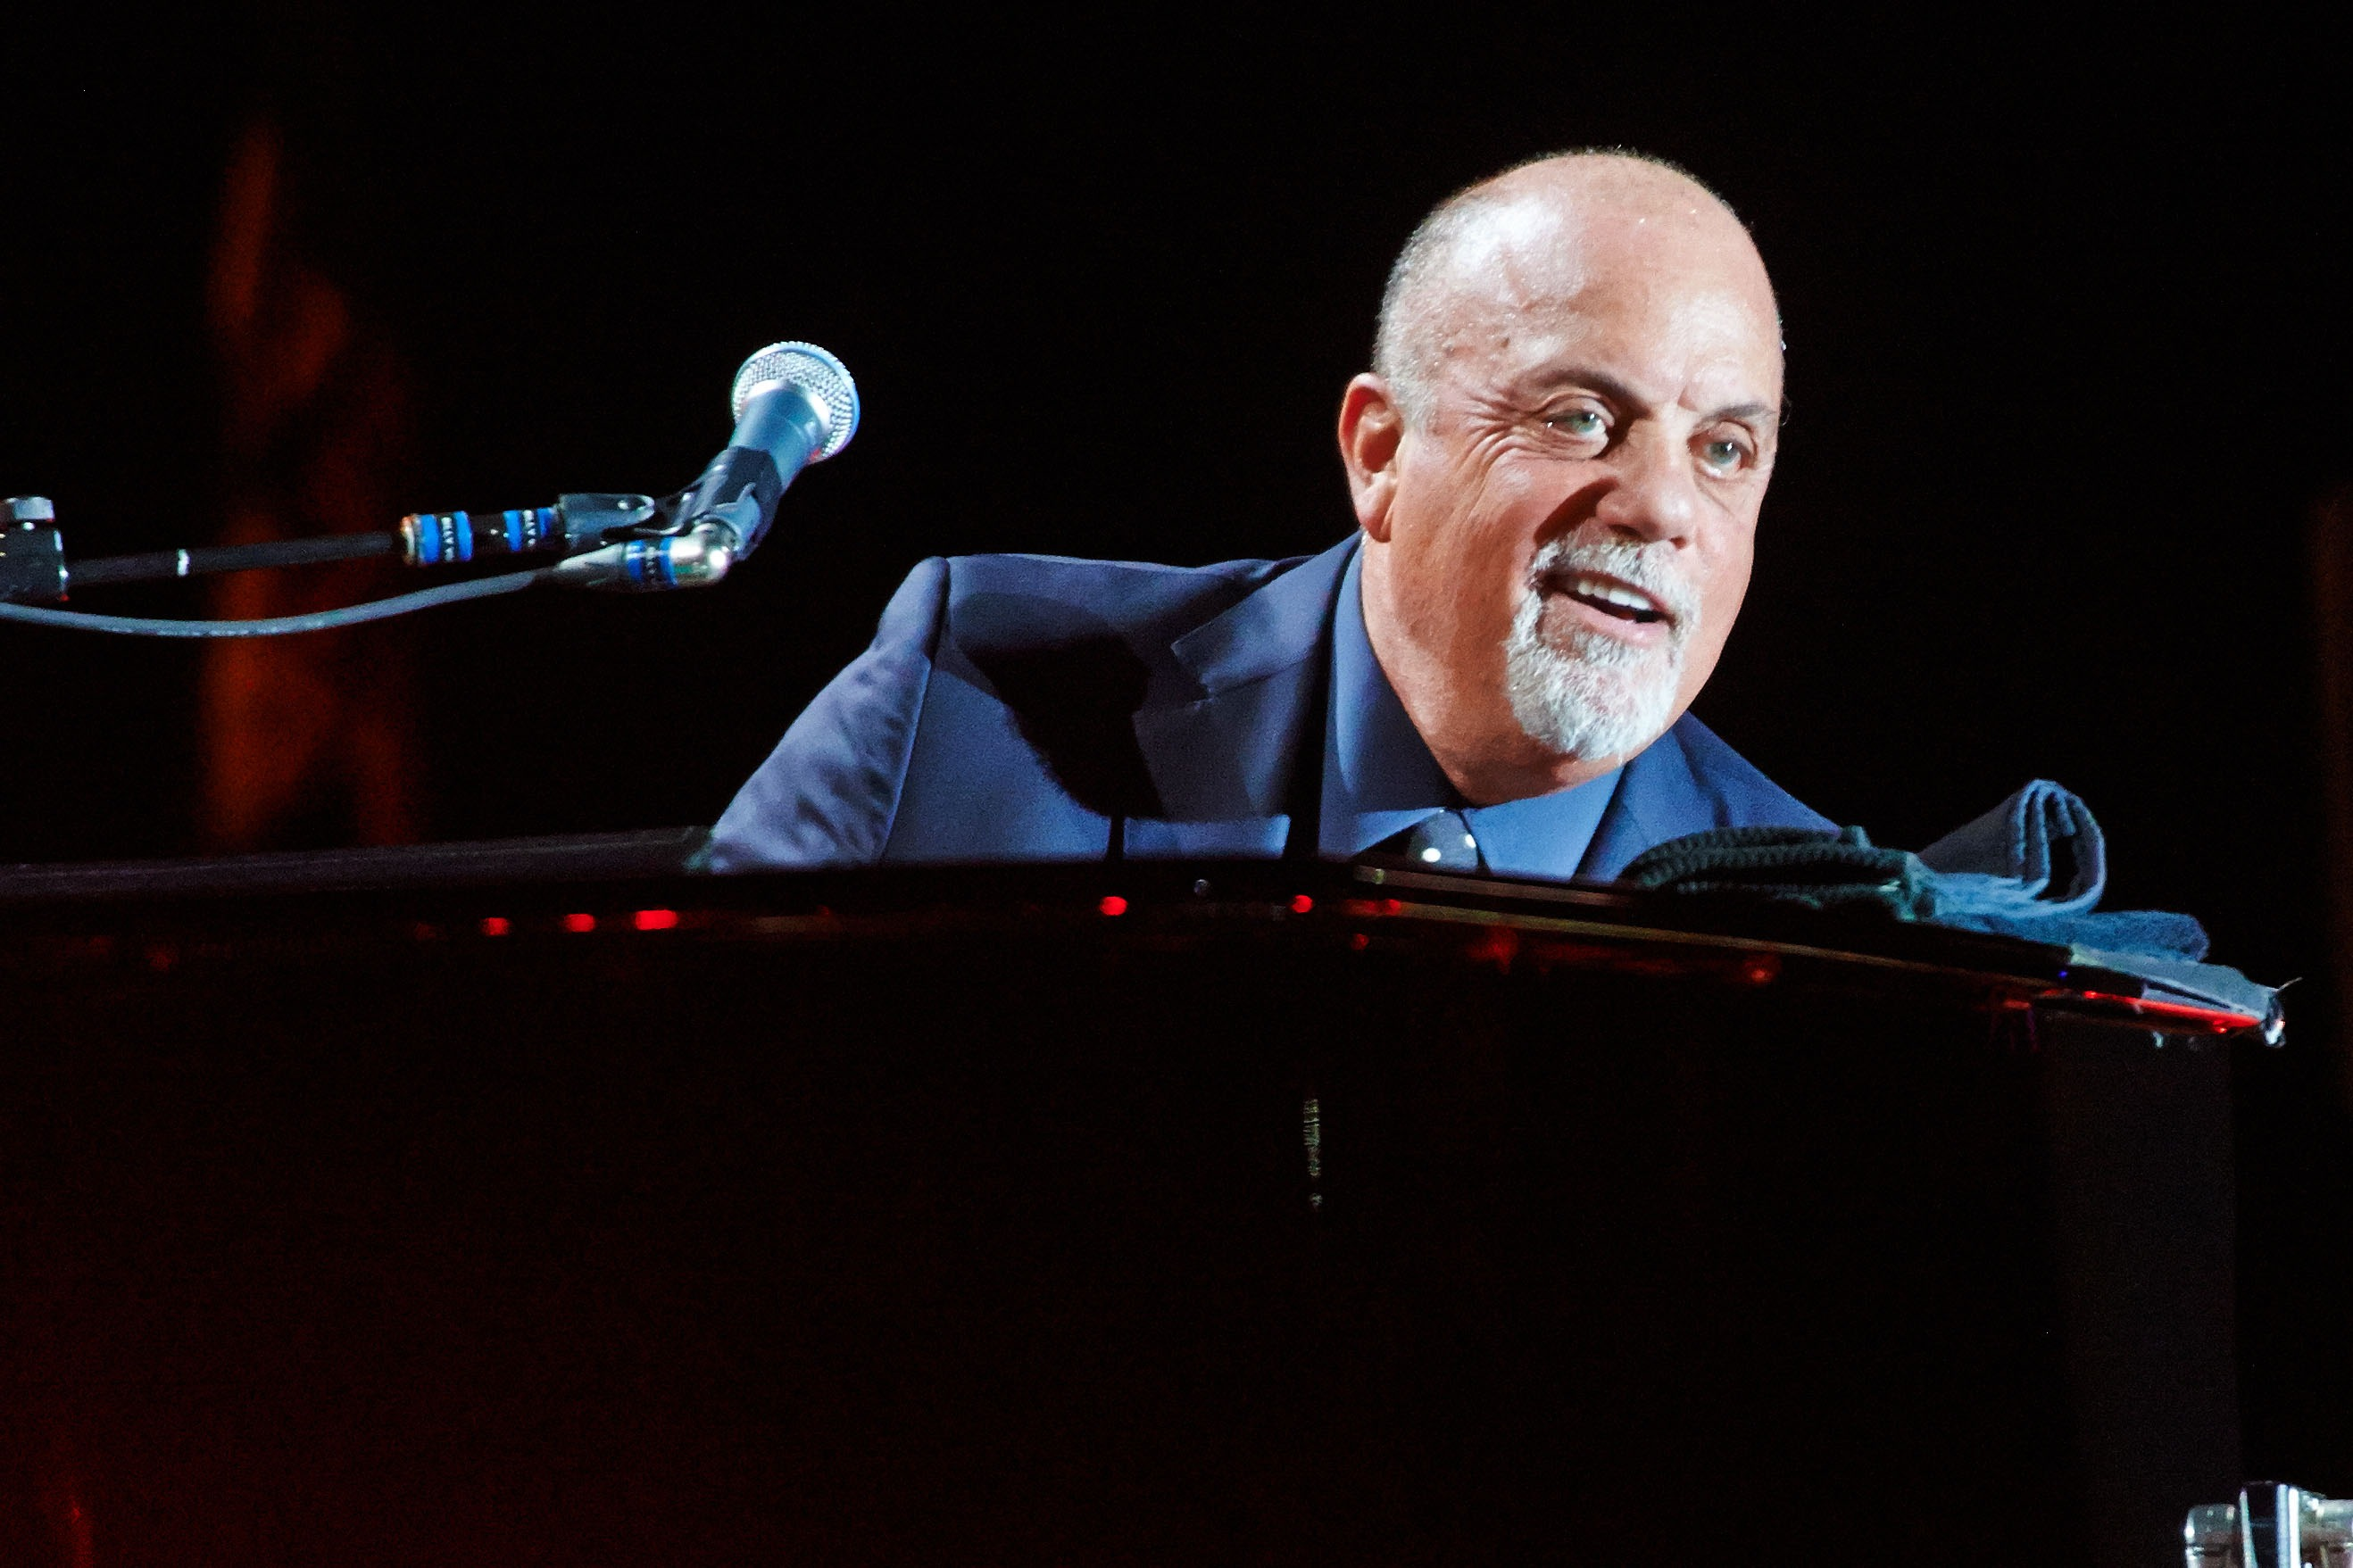 billy joel the downeaster 'alexa'